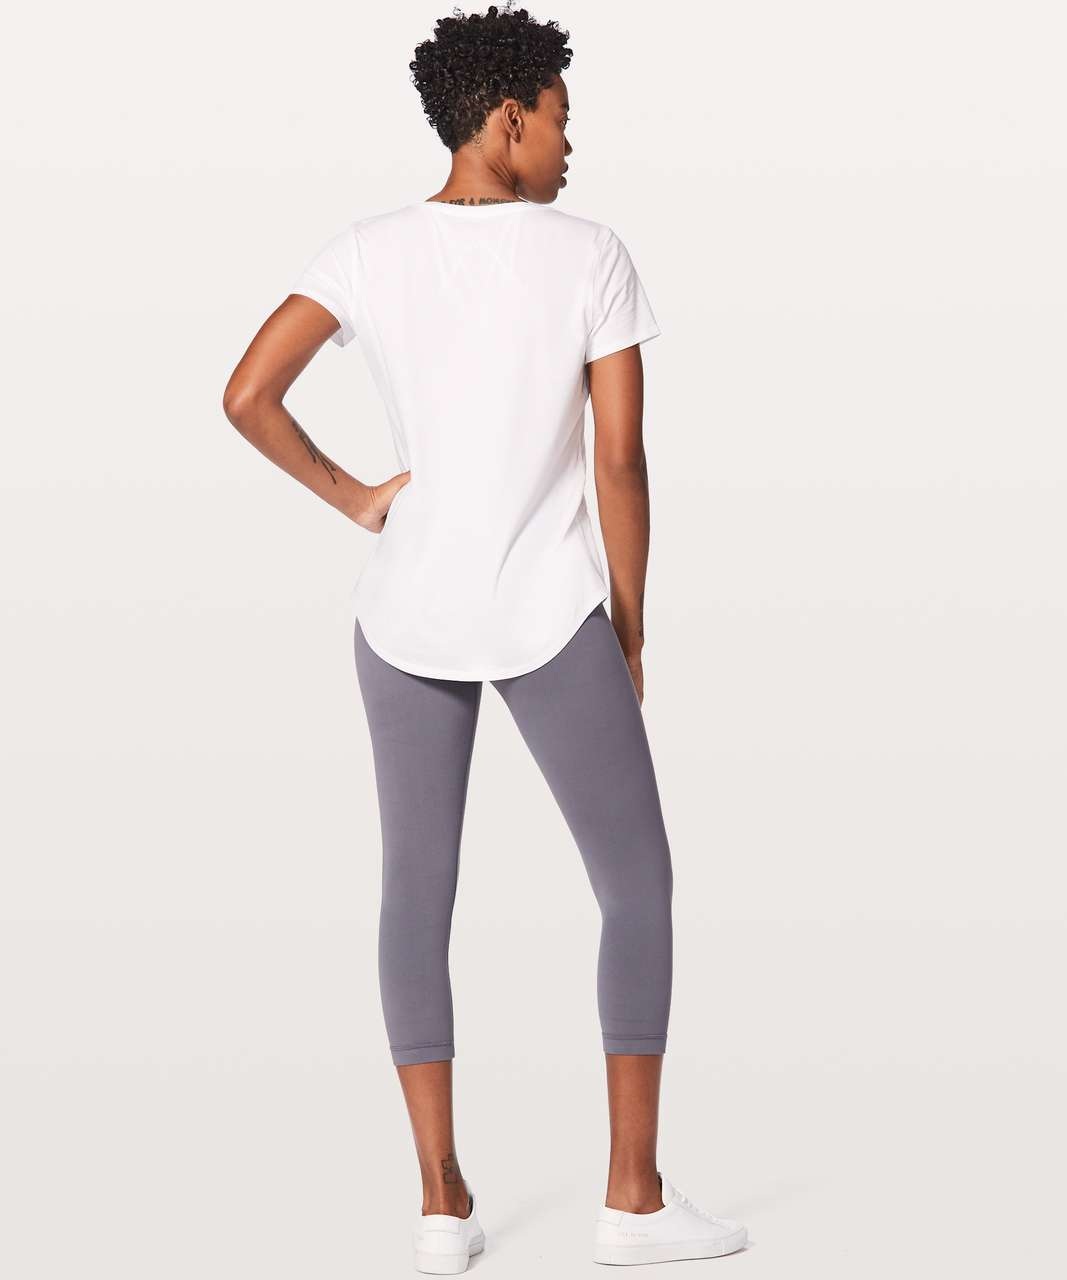 Lululemon Love Tee V - White (Second Release)